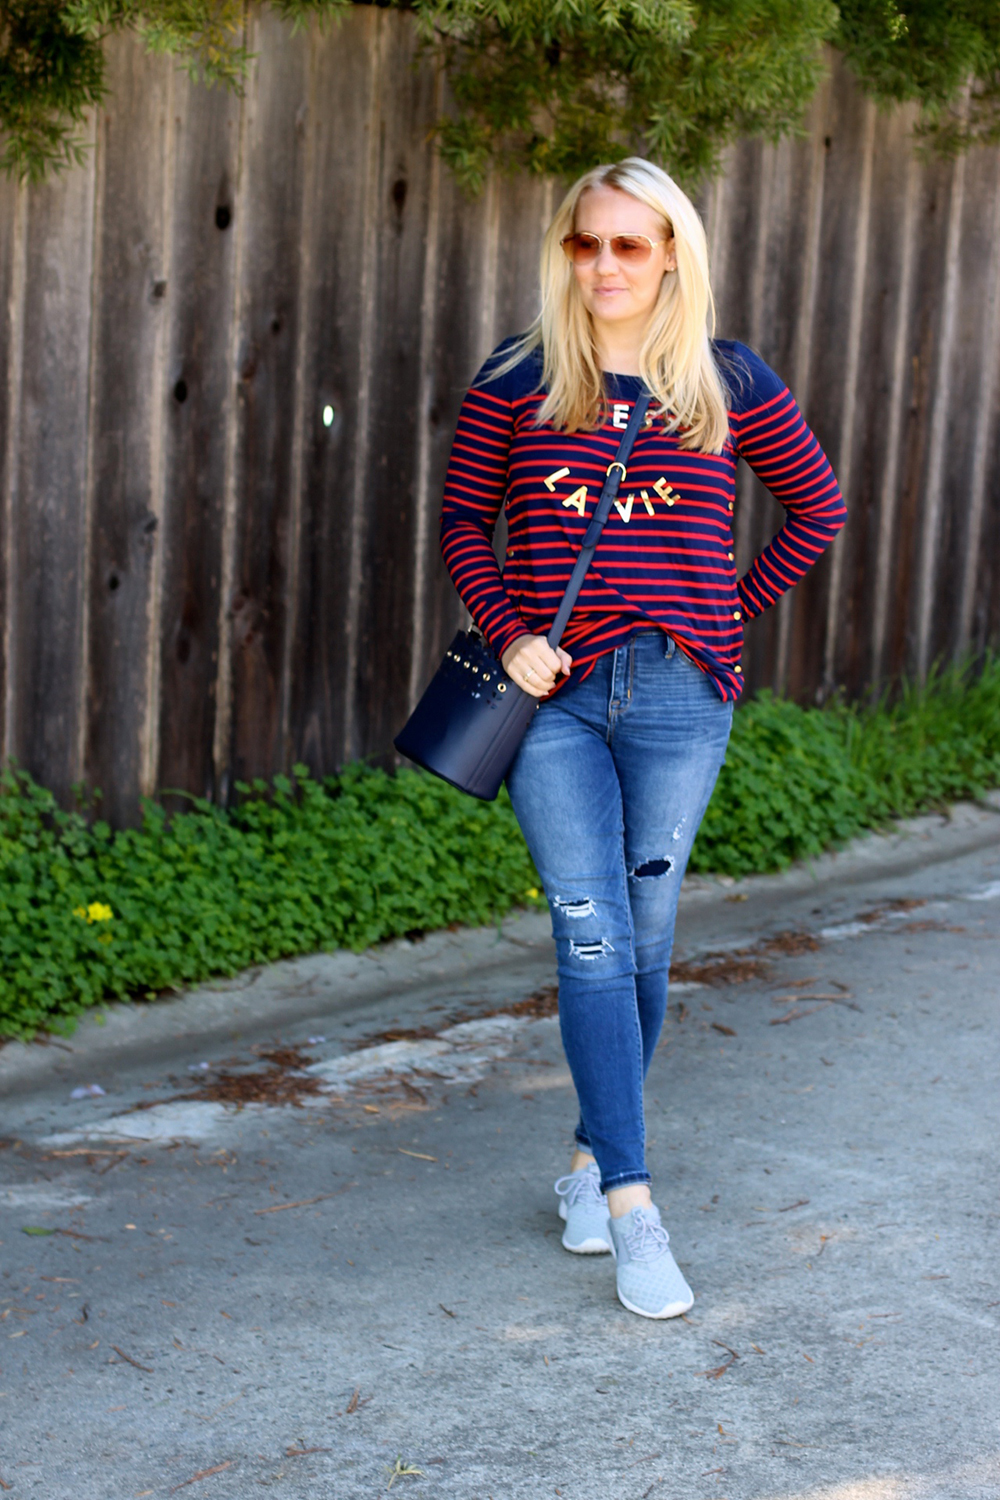 C'est La Vie-Everyday Mom Style-Mom Uniform-Nursing Top-Outfit Inspiration-Bay Area Fashion Blogger-Have Need Want